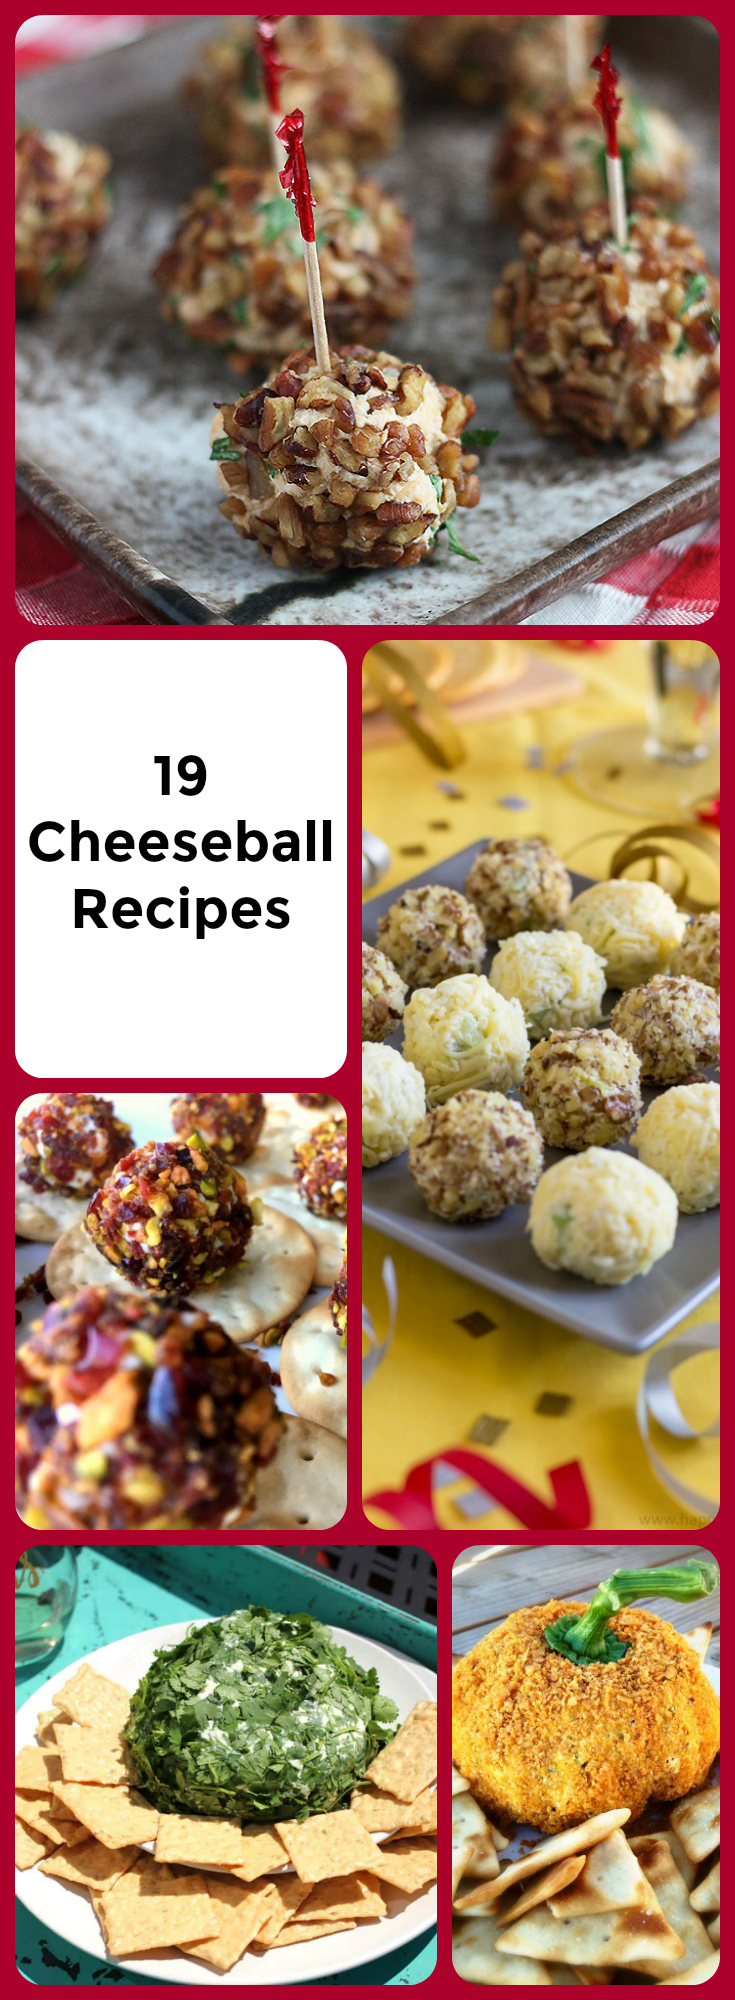 Try these easy cheese ball recipes that will rock your party! Which one will you try first? Check out my very favorite cheese ball recipe. I adore the creaminess and the blue cheese.